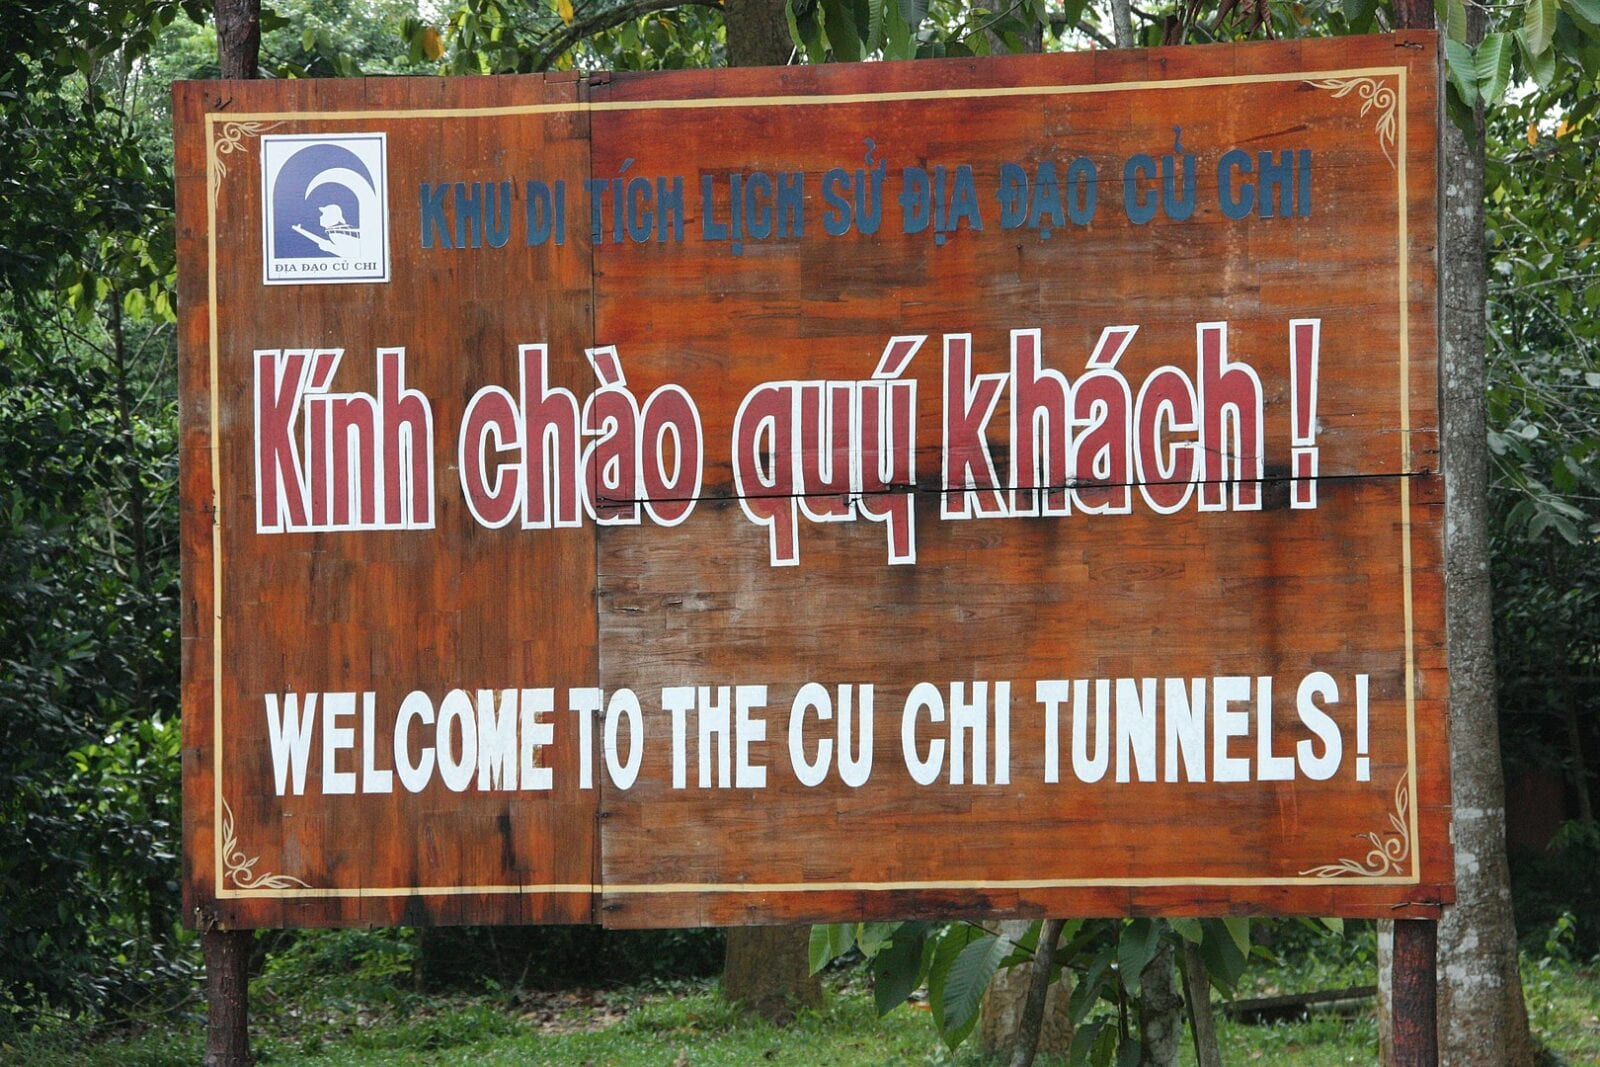 Image of the welcome sign to the Cu Chi Tunnels in HCMC, Vietnam